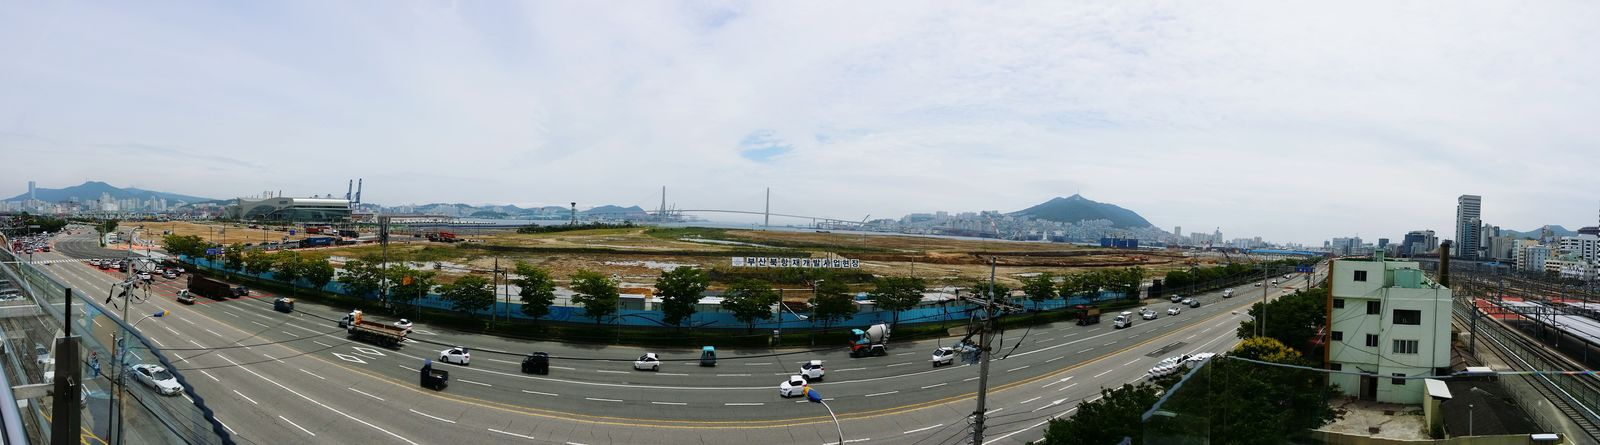 Pusan View Fresh And Clean Goodbyes To Be Continued...